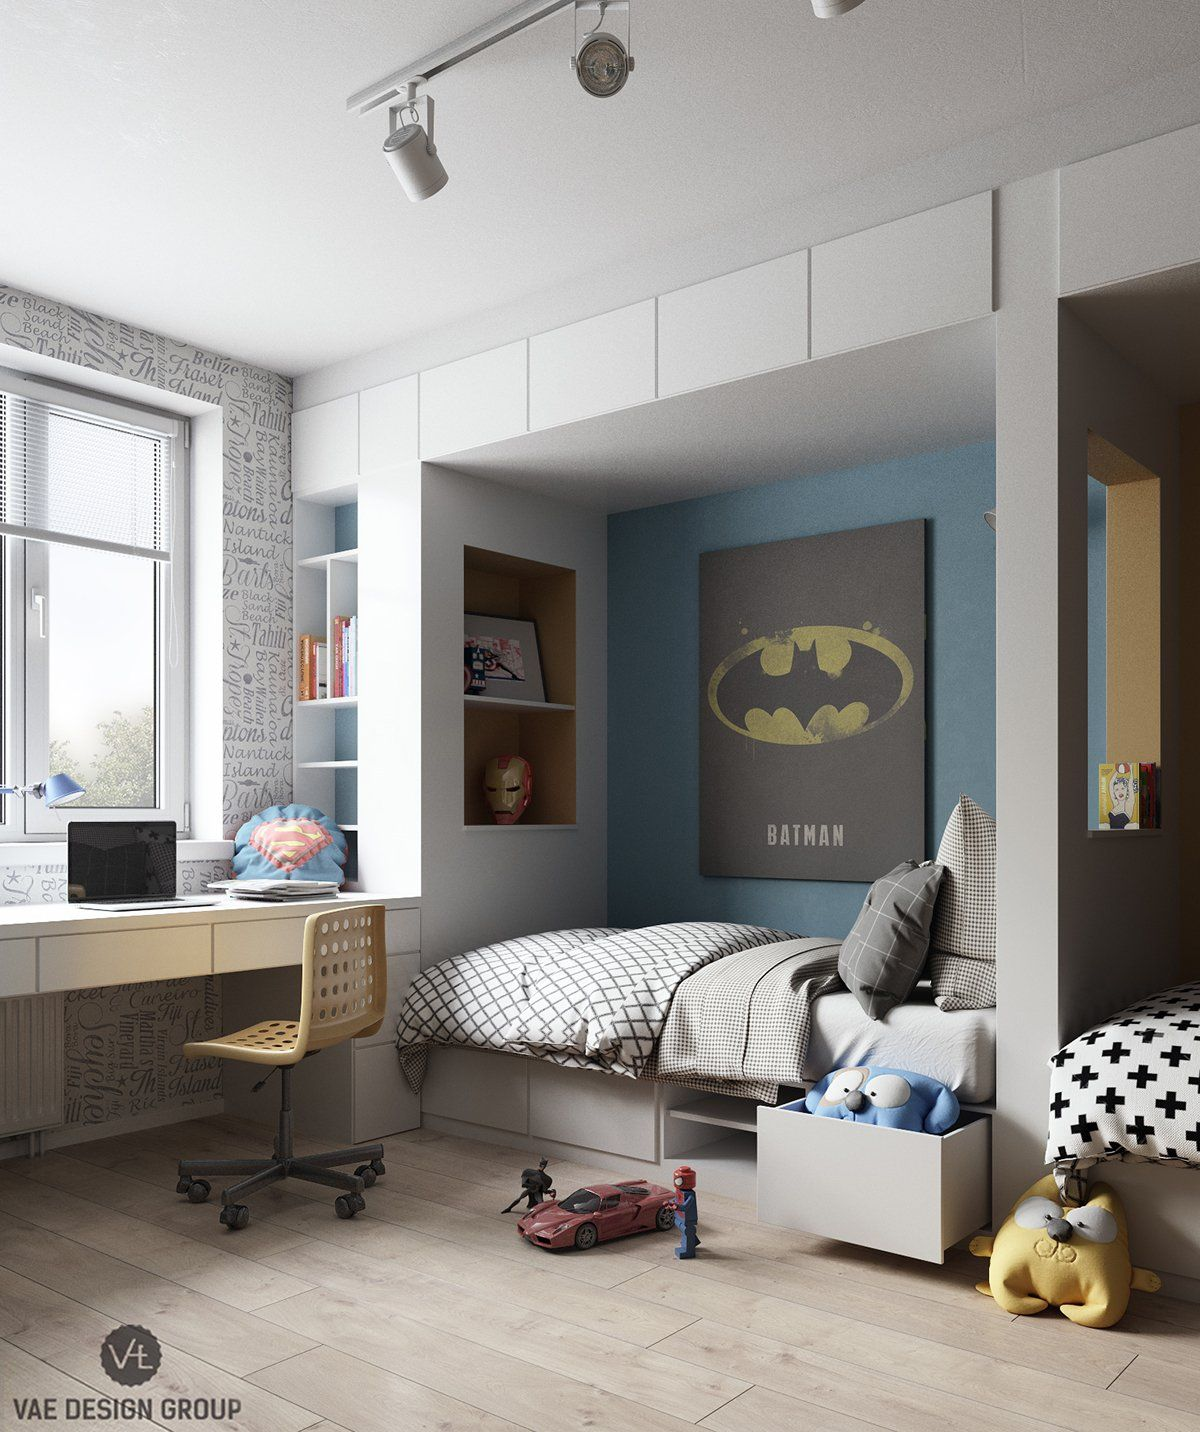 superhelden zimmer haus pinterest kinderzimmer kinder zimmer und kinderzimmer ideen. Black Bedroom Furniture Sets. Home Design Ideas